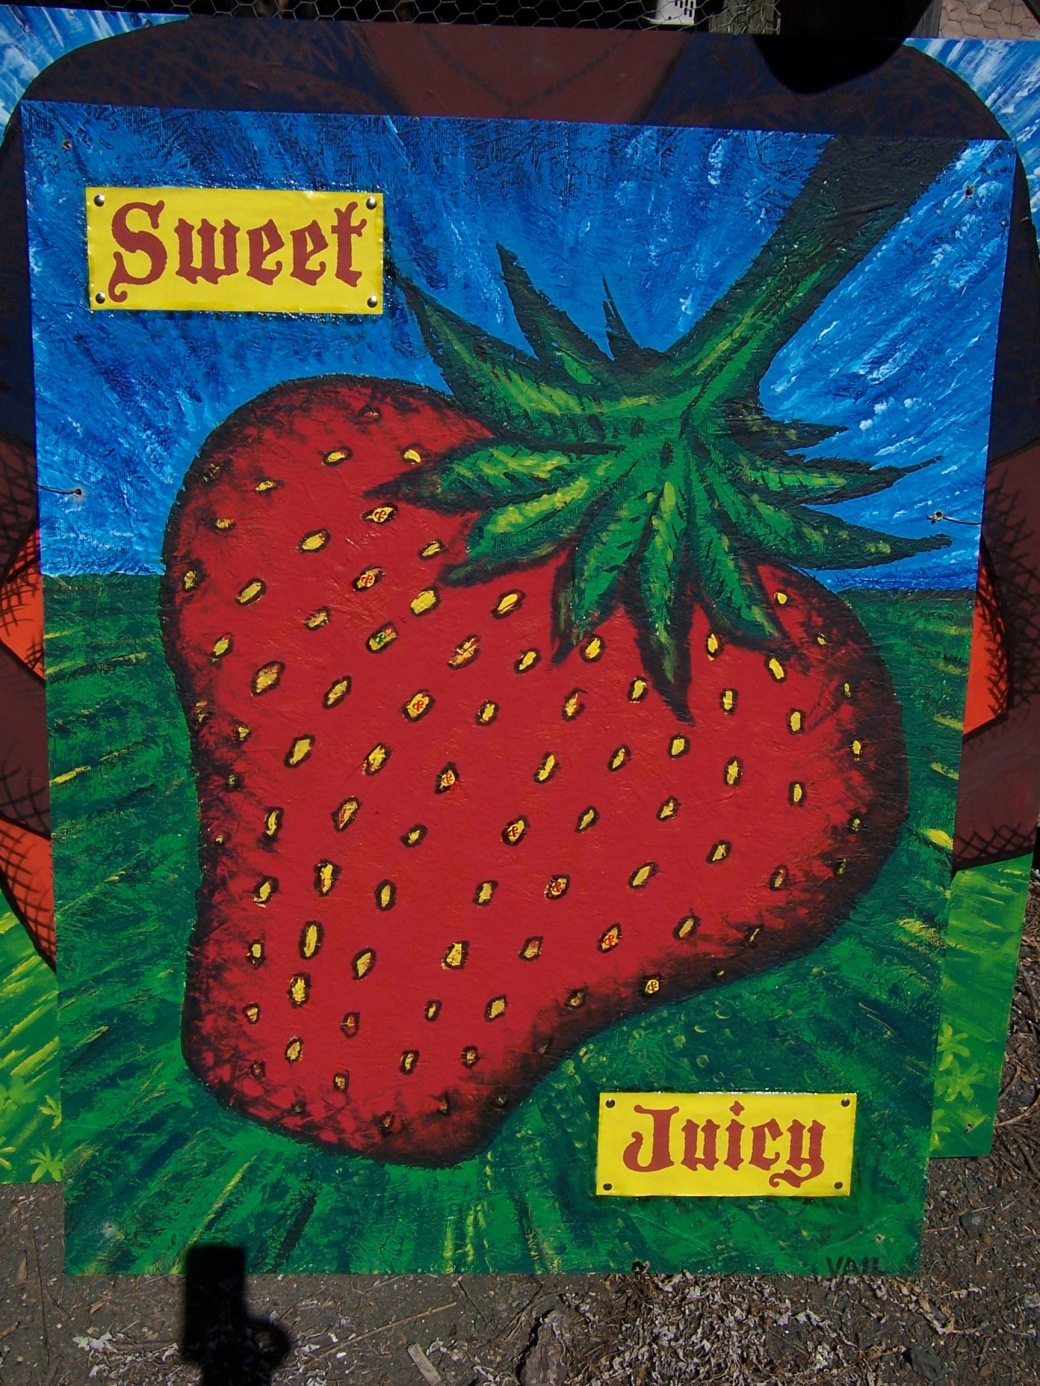 Sweet & Juicy